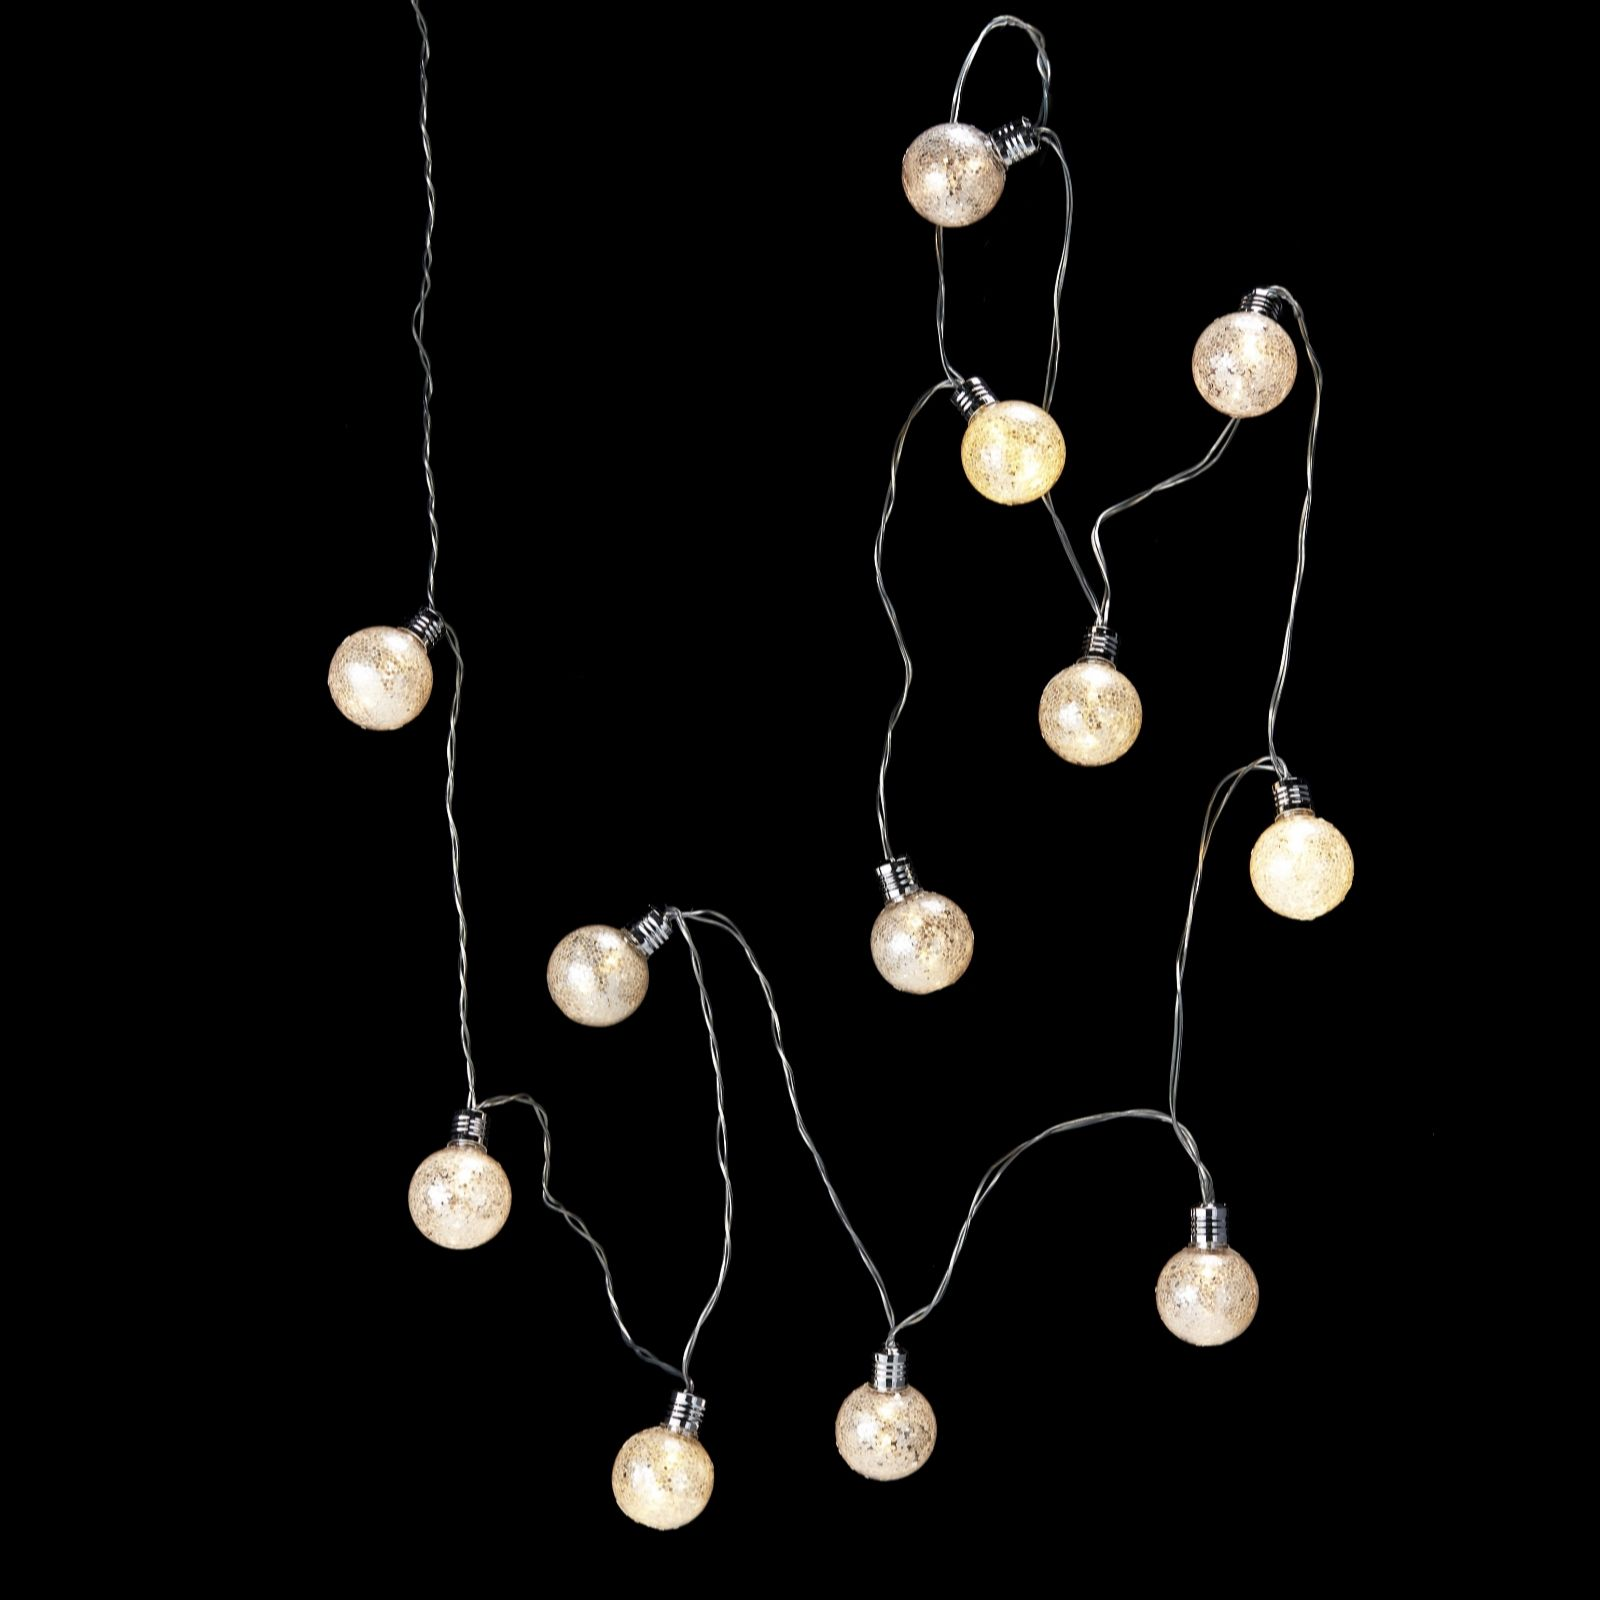 Battery String Lights Indoor : Battery Operated 12 LED Indoor String Lights - 704344 QVCUK.com